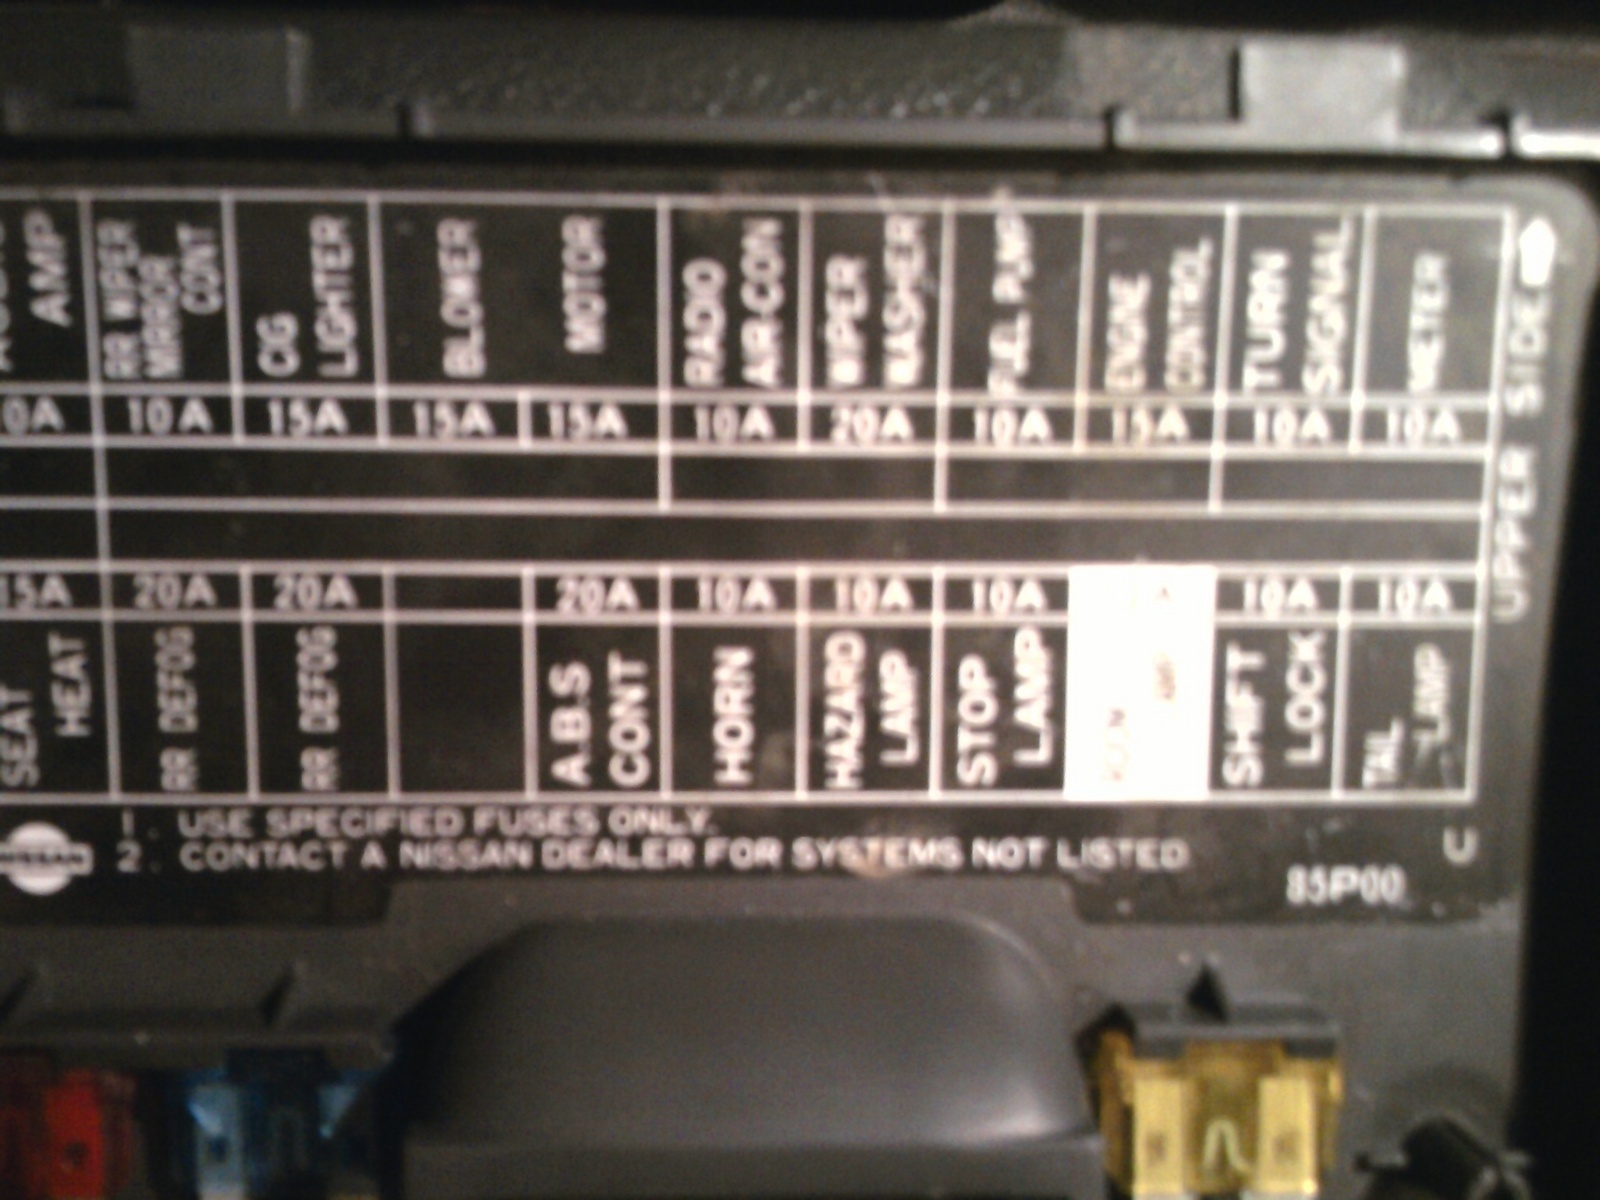 hight resolution of nissan pickup questions where is the fuse for the hazard lights on 1985 chevy truck fuse box diagram 1995 chevy truck fuse box diagram